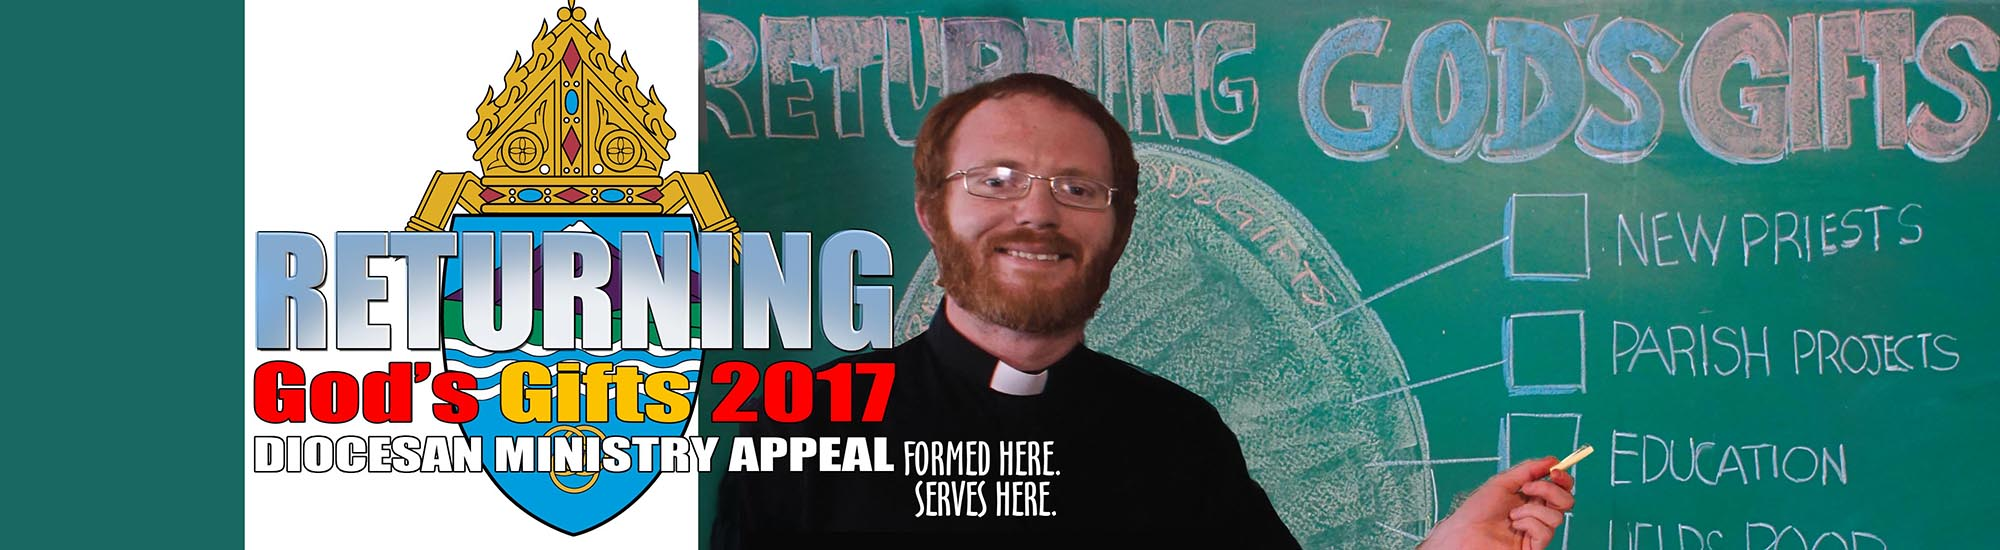 Donate Now to Returning God's Gifts 2017